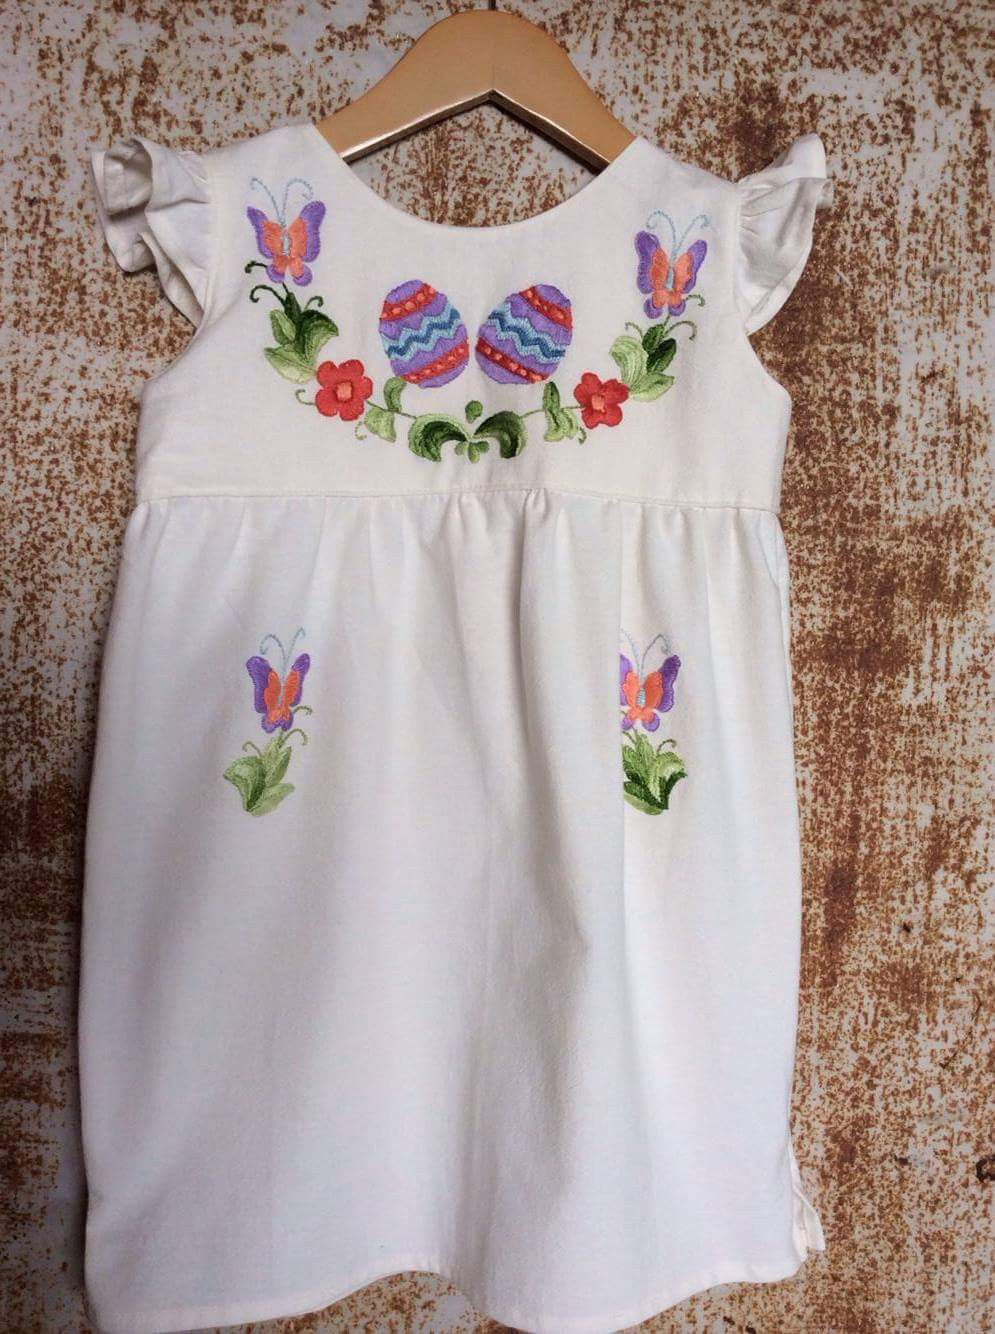 Cream Easter Eggs Dress on Local Unbleached Cotton - Past Easter